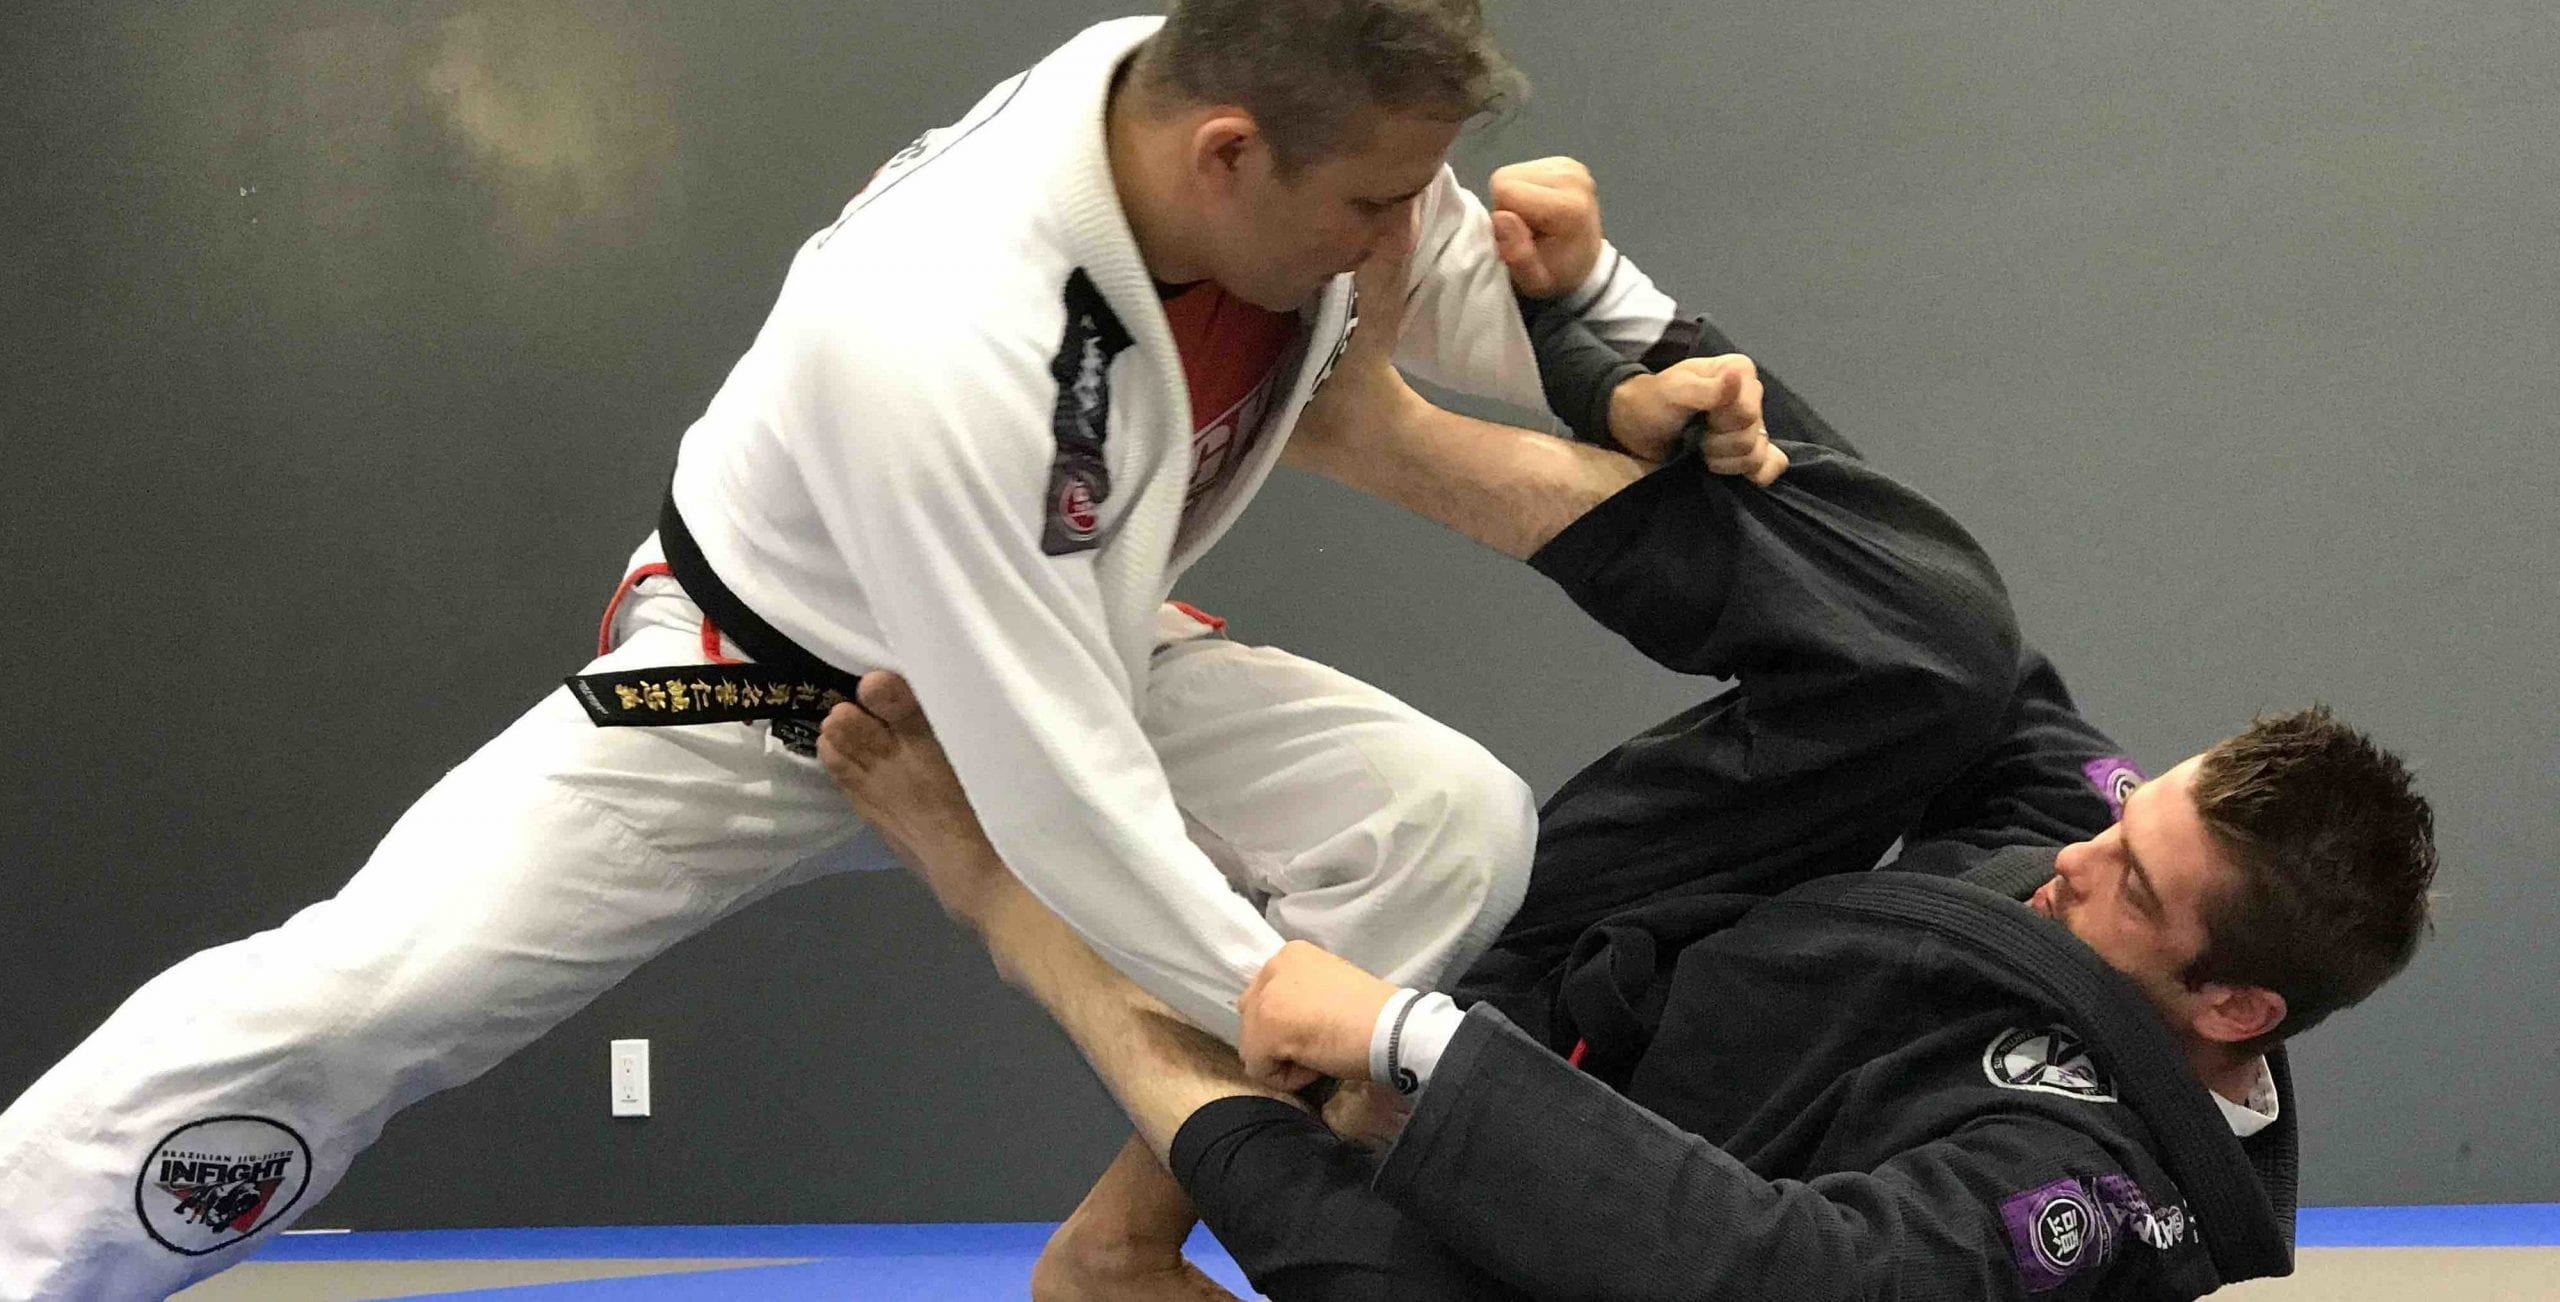 Eduardo Cadena and Ryan Christopher - BVJJ Jiu-Jitsu Coaches